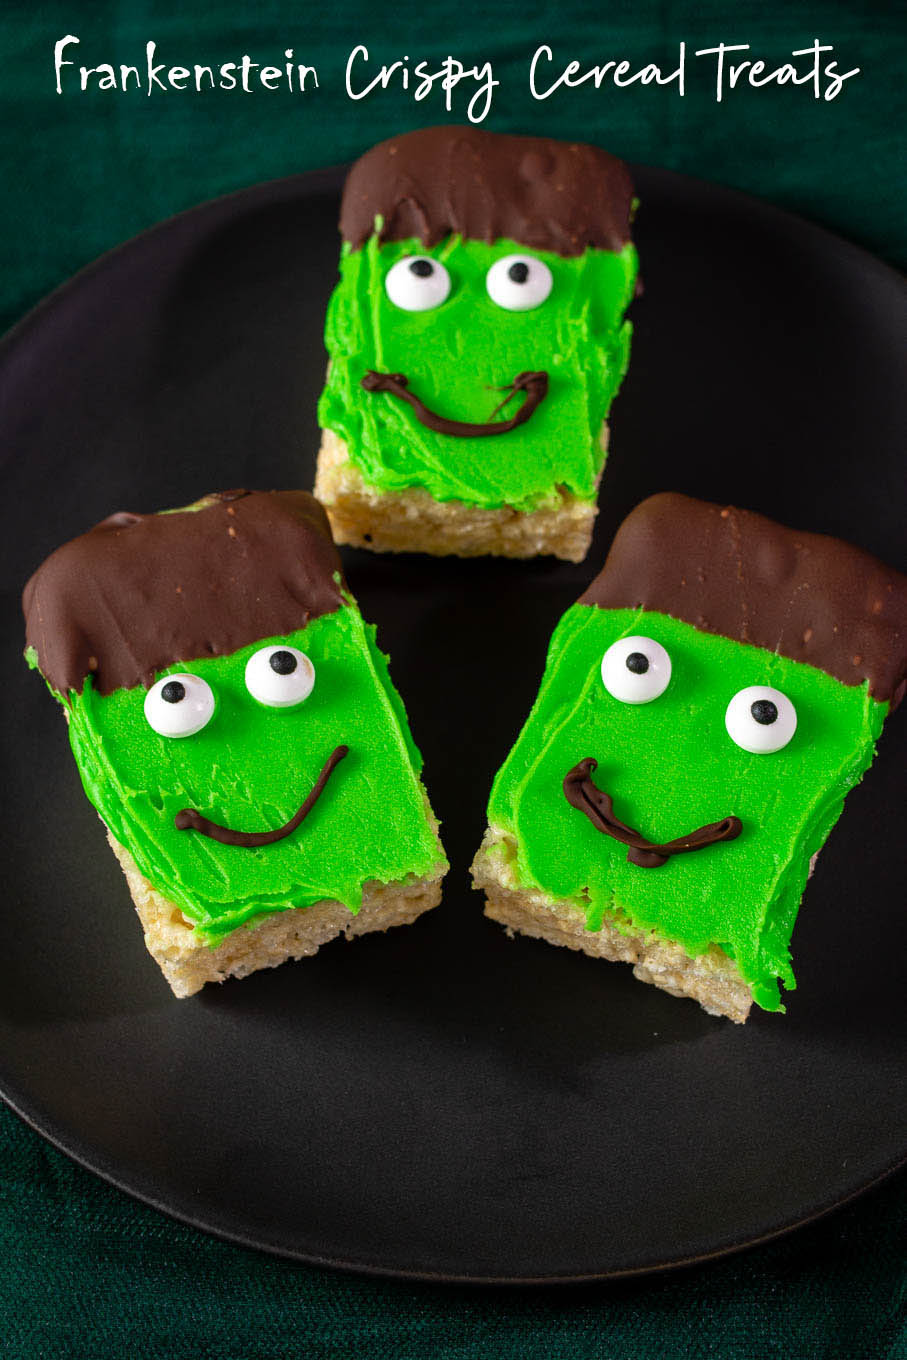 Three Frankenstein Crispy Rice Cereal Treats on a black plate